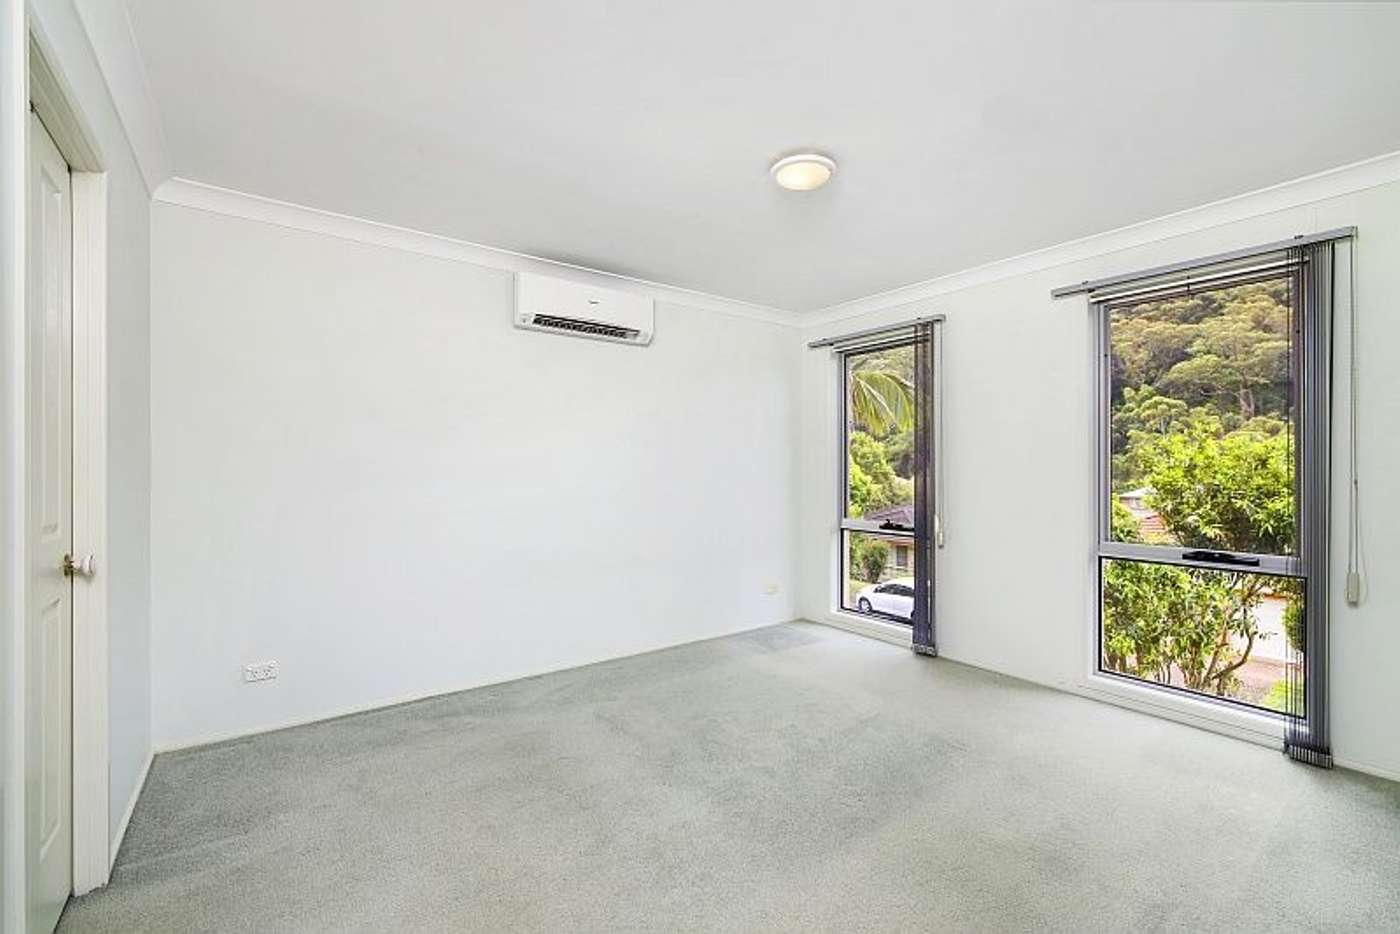 Sixth view of Homely house listing, 11 Wixstead Close, Point Clare NSW 2250